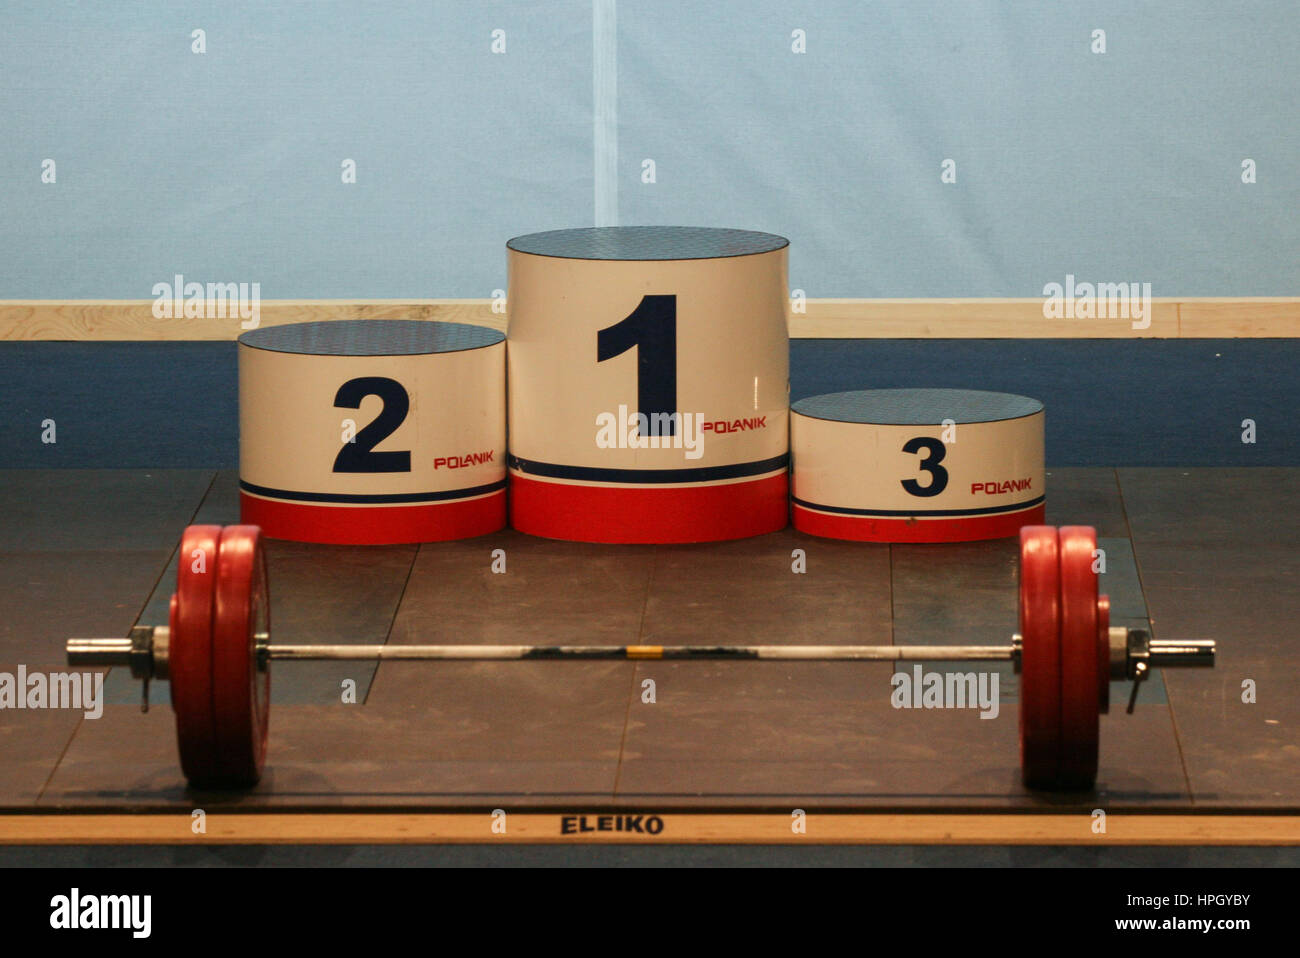 Bucharest, Romania, April 5, 2009: Winner podium in European Weightlifting Competition. - Stock Image